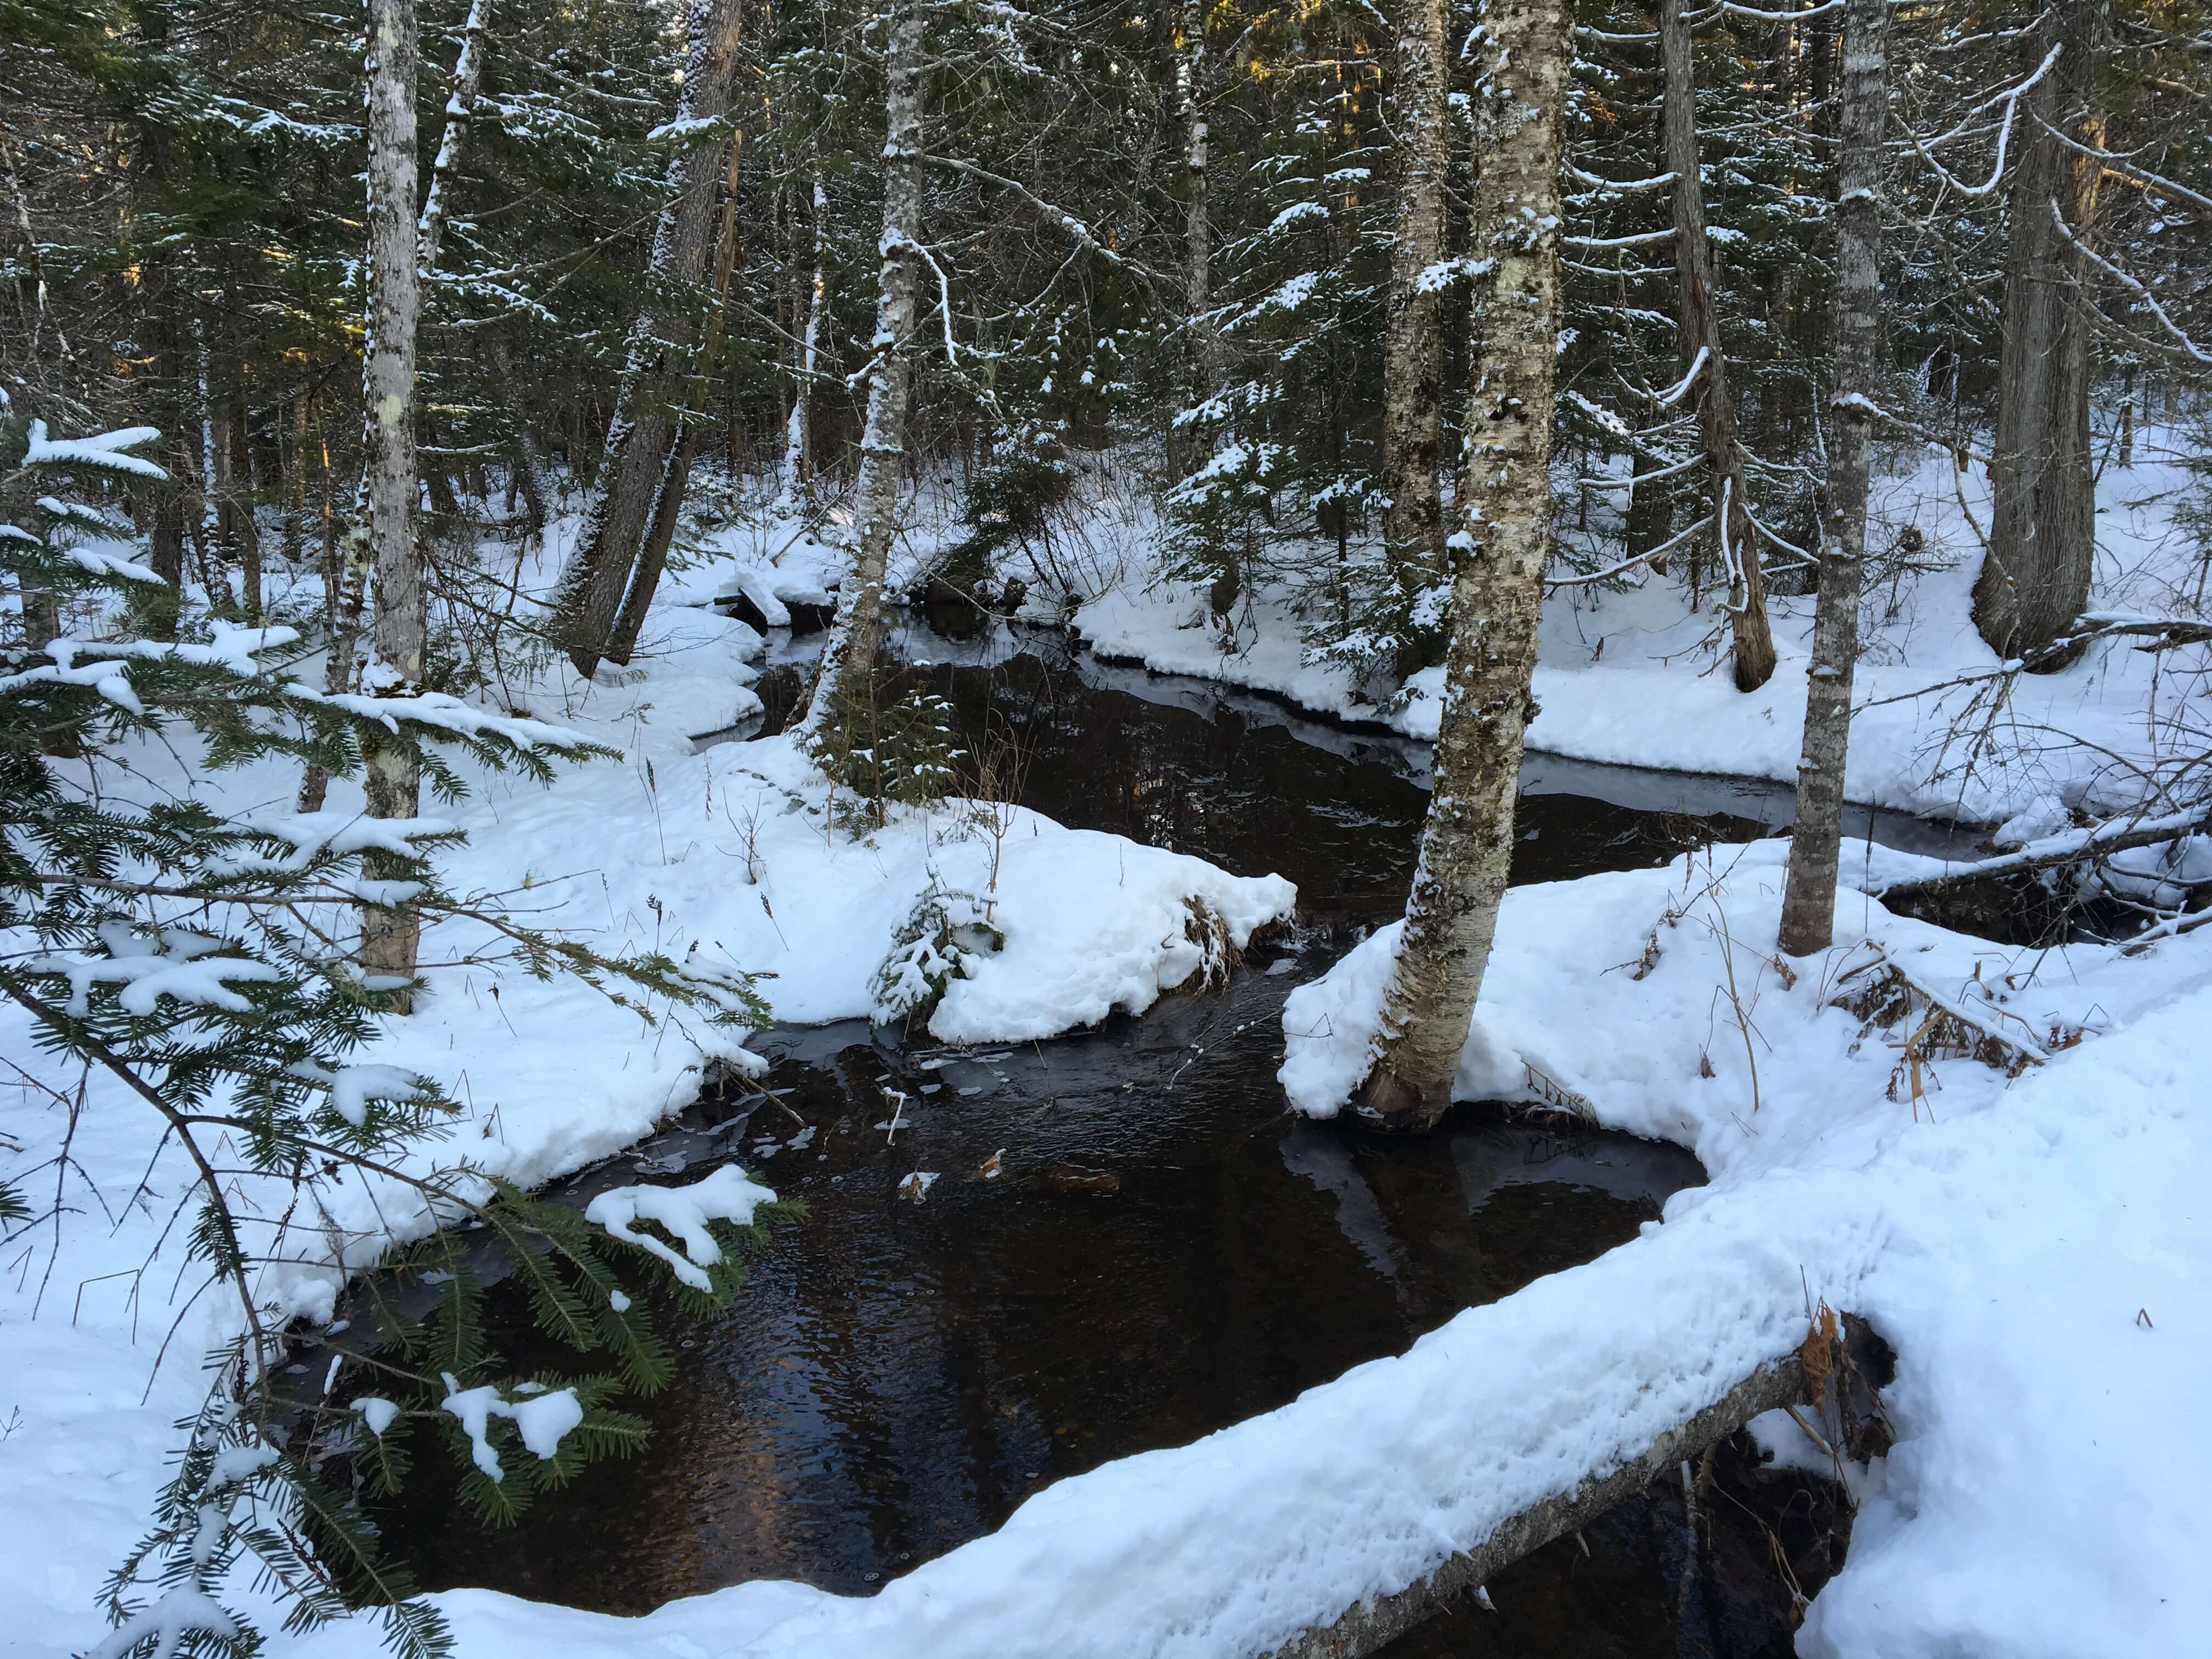 Cleaves Brook Headwaters 91.7 acres Prentiss, Maine